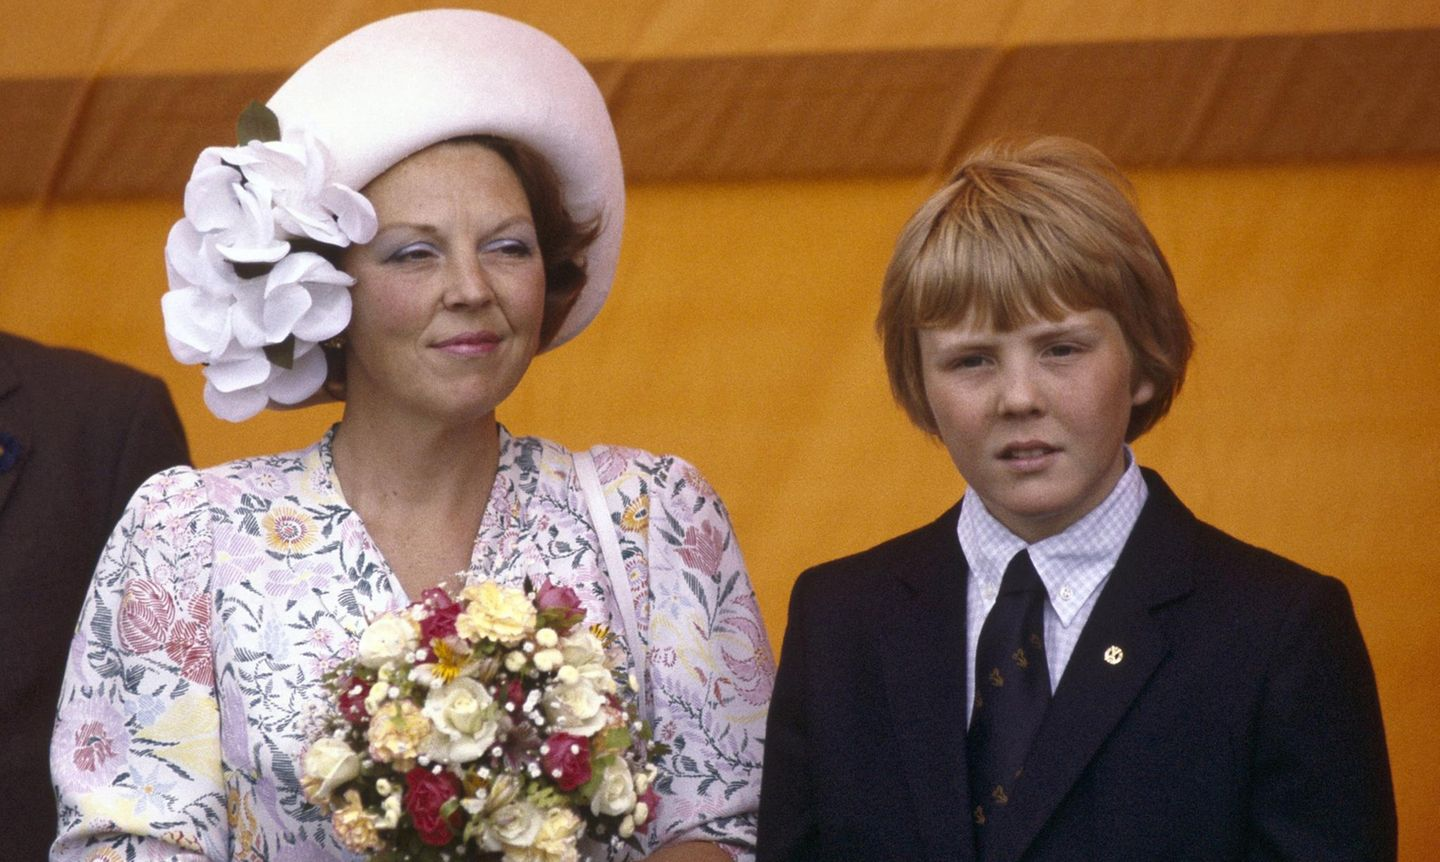 Königin Beatrix und Prinz Willem-Alexander